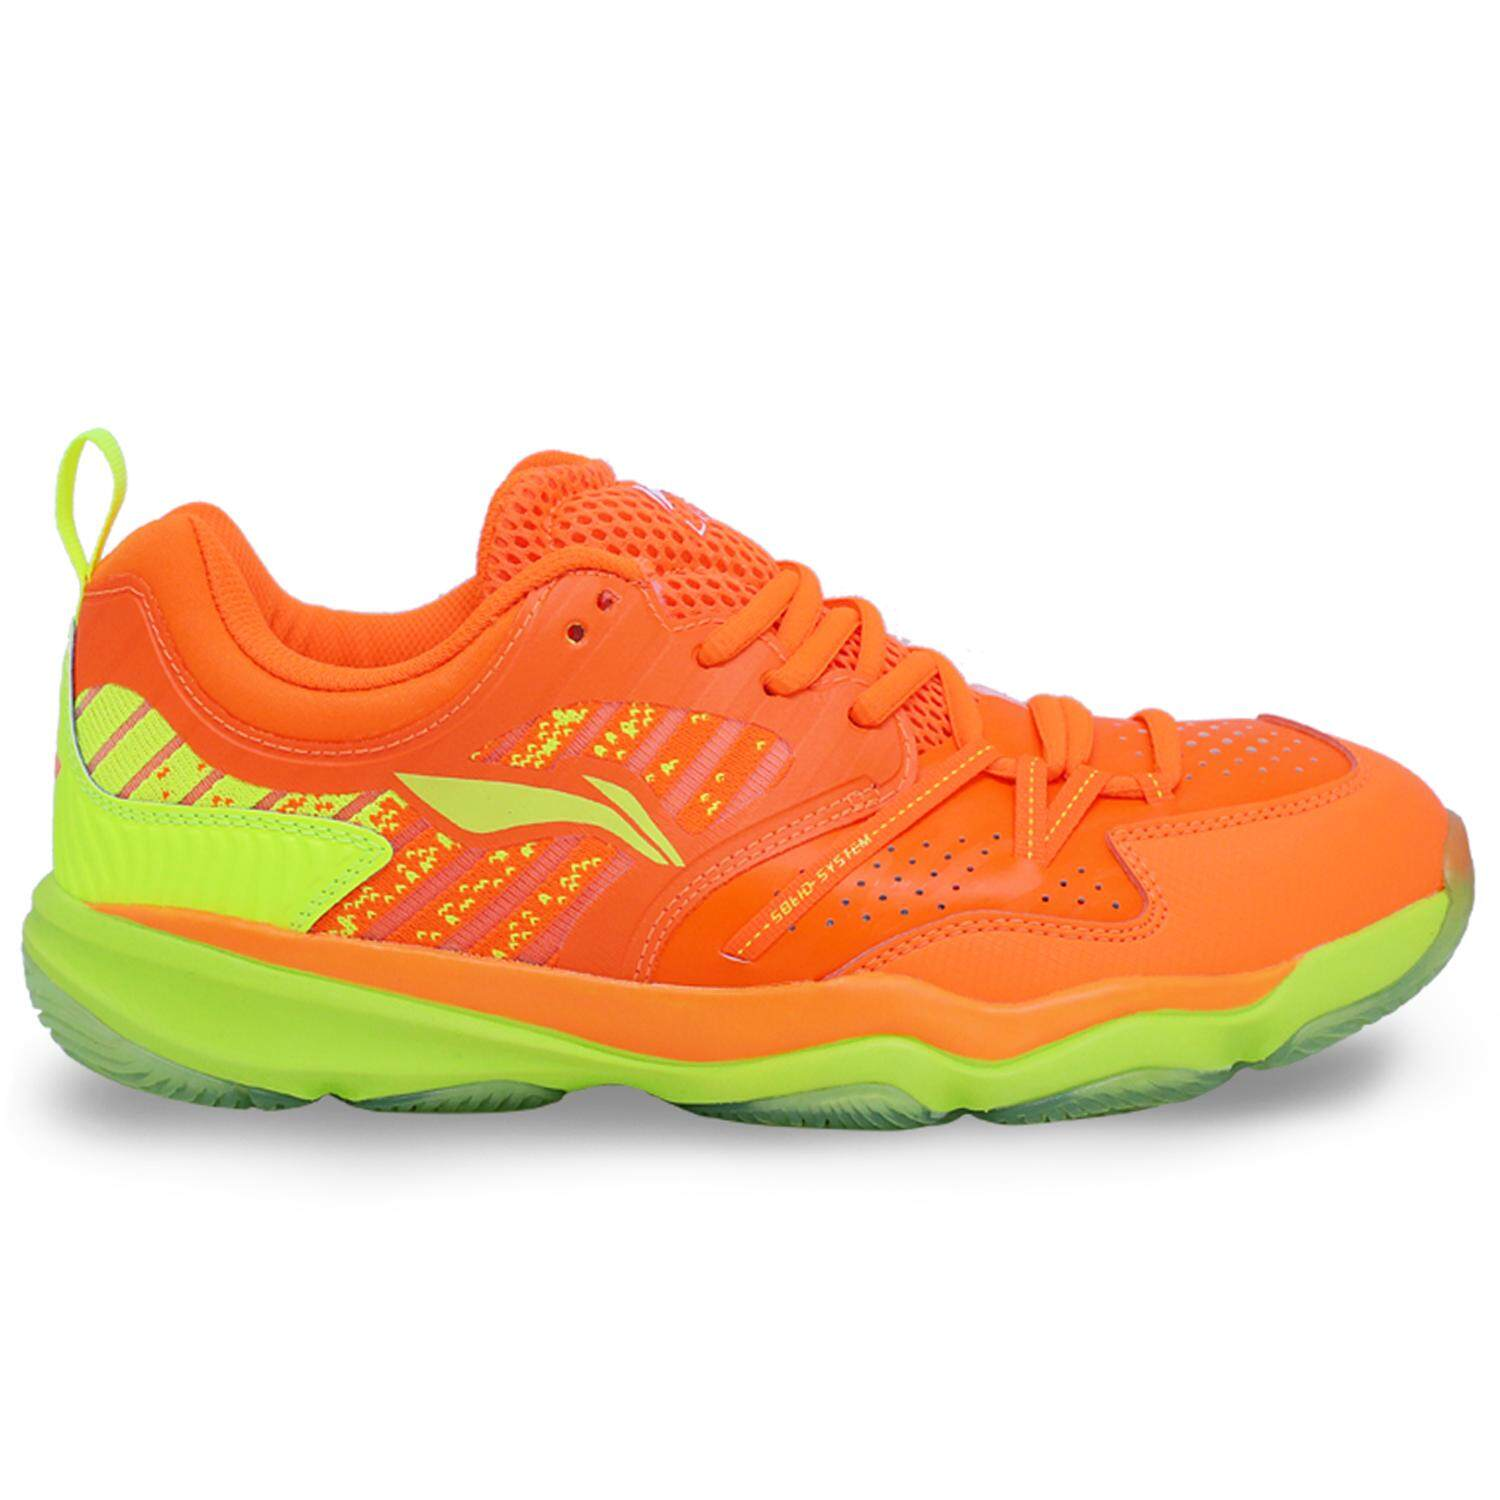 Li-Ning Ranger Badminton Training Shoes